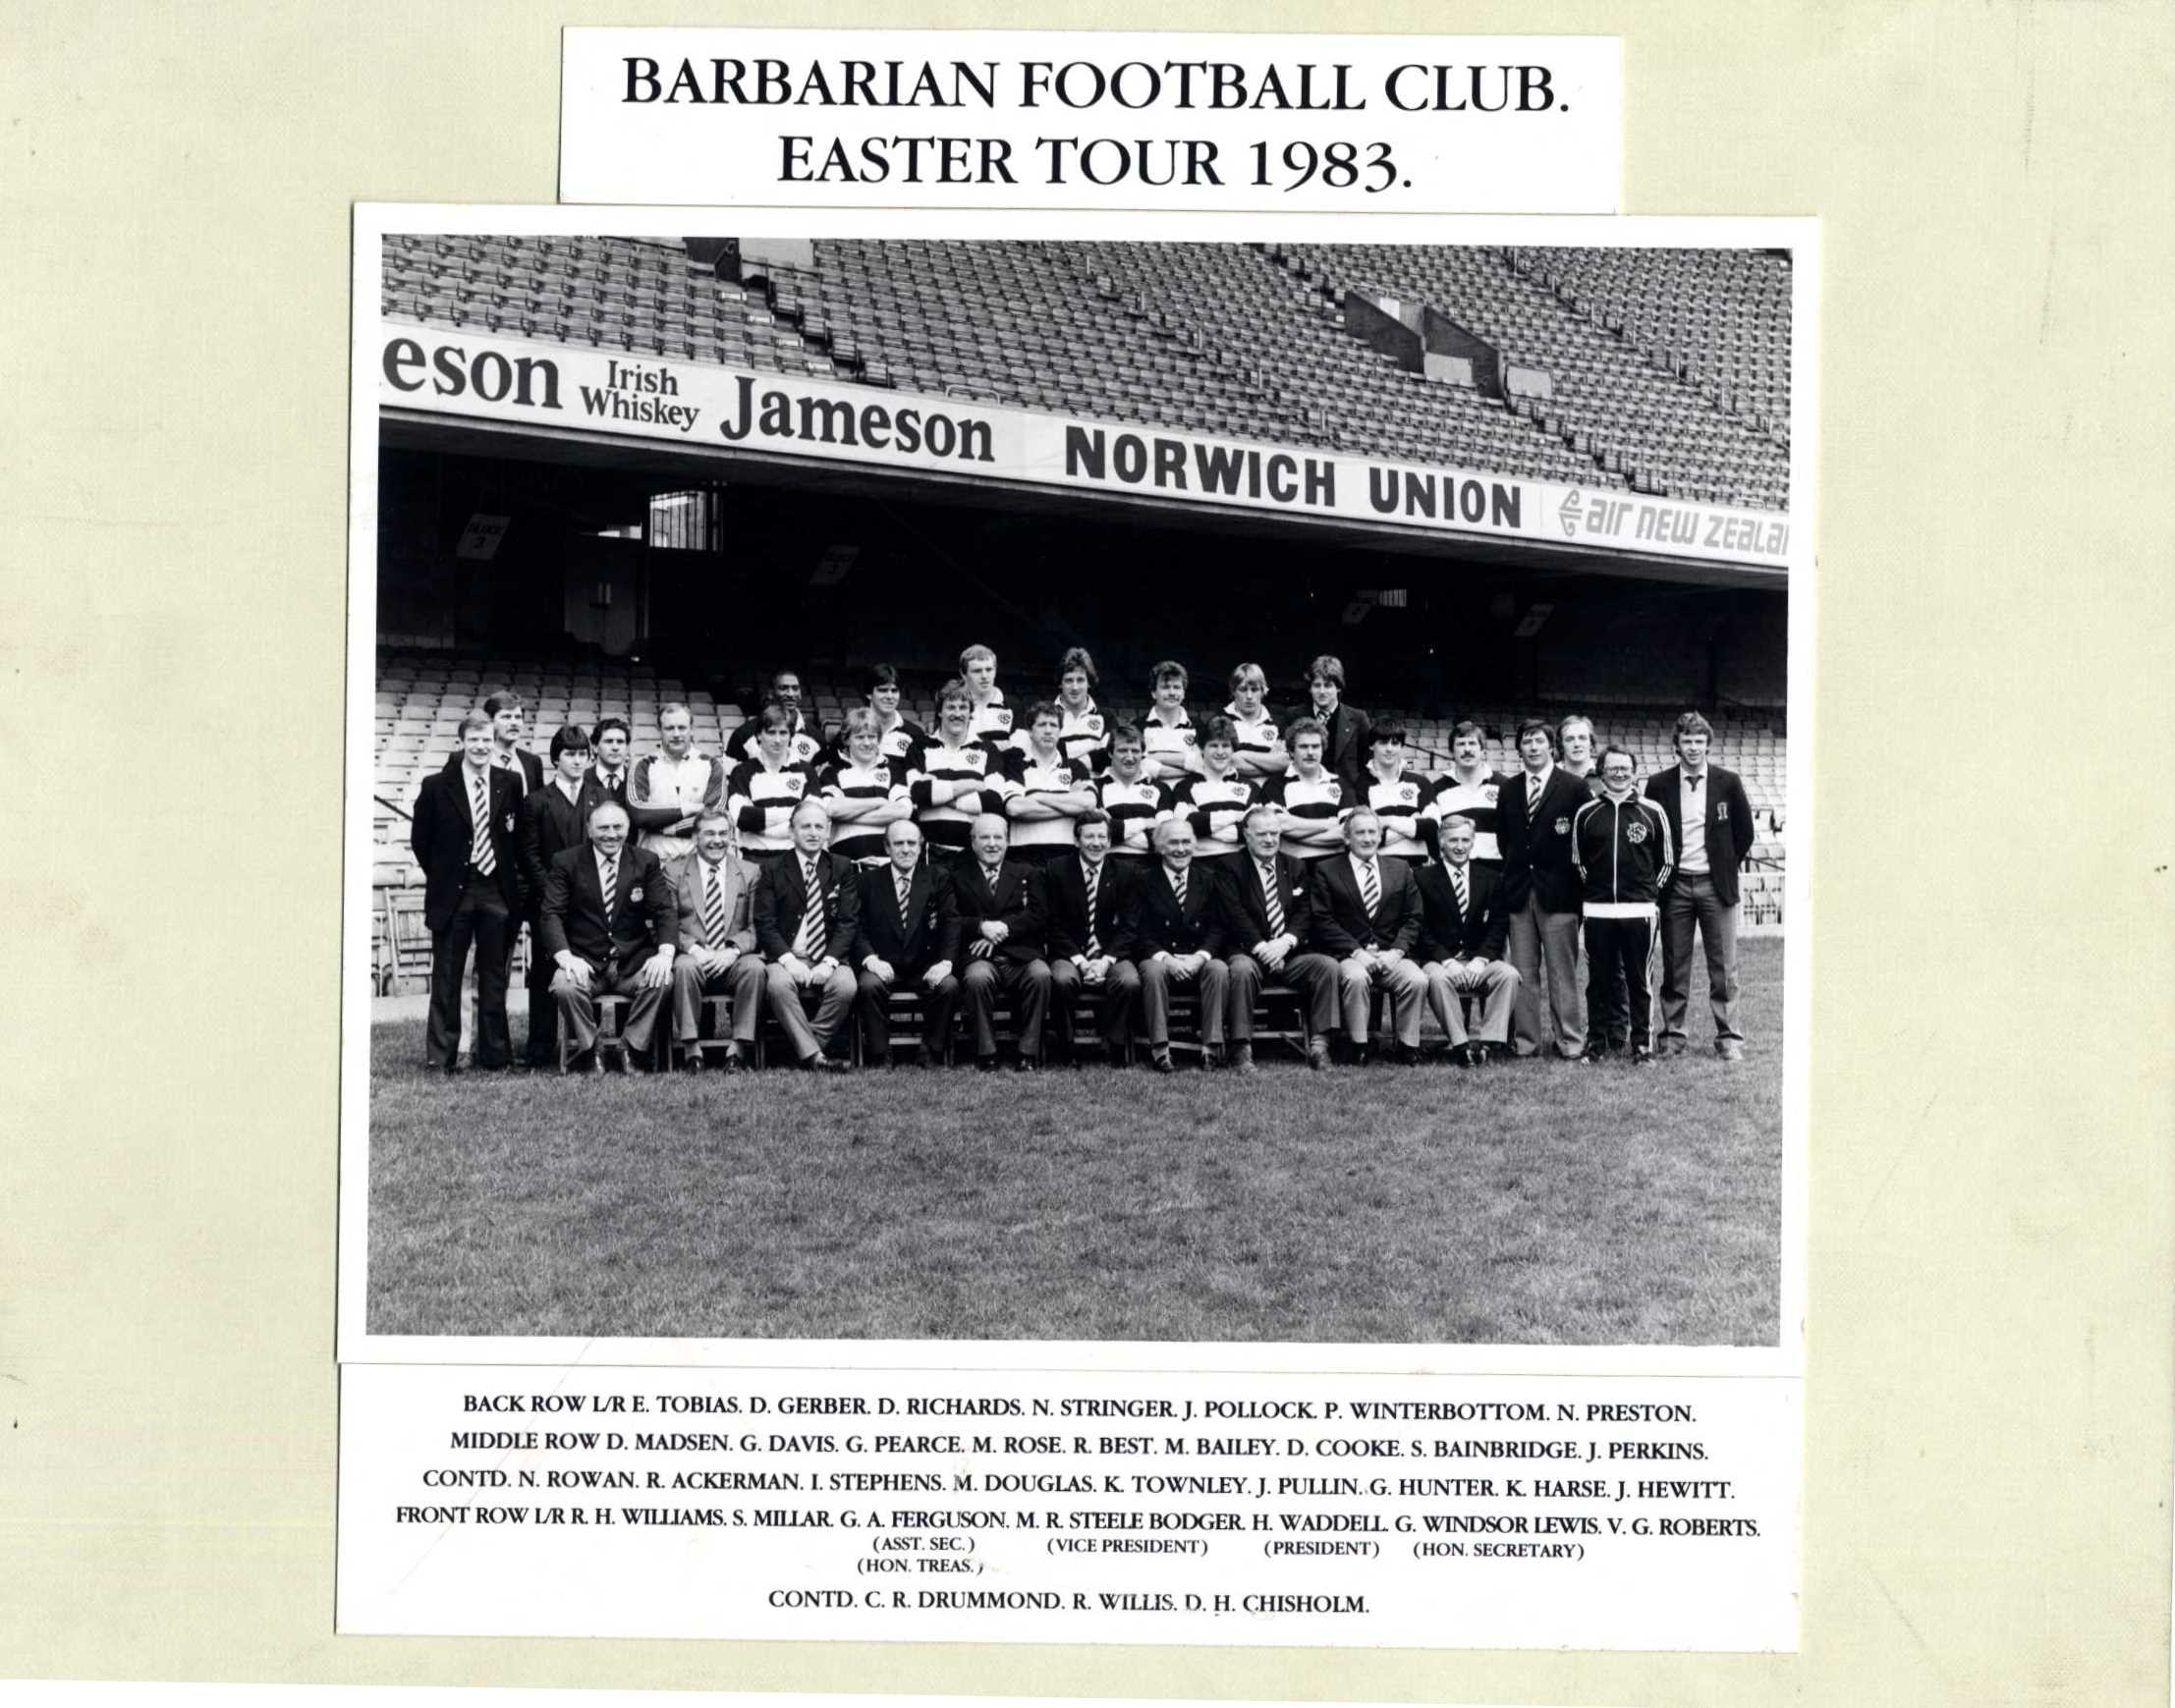 Barbarian FC Easter Tour 1983